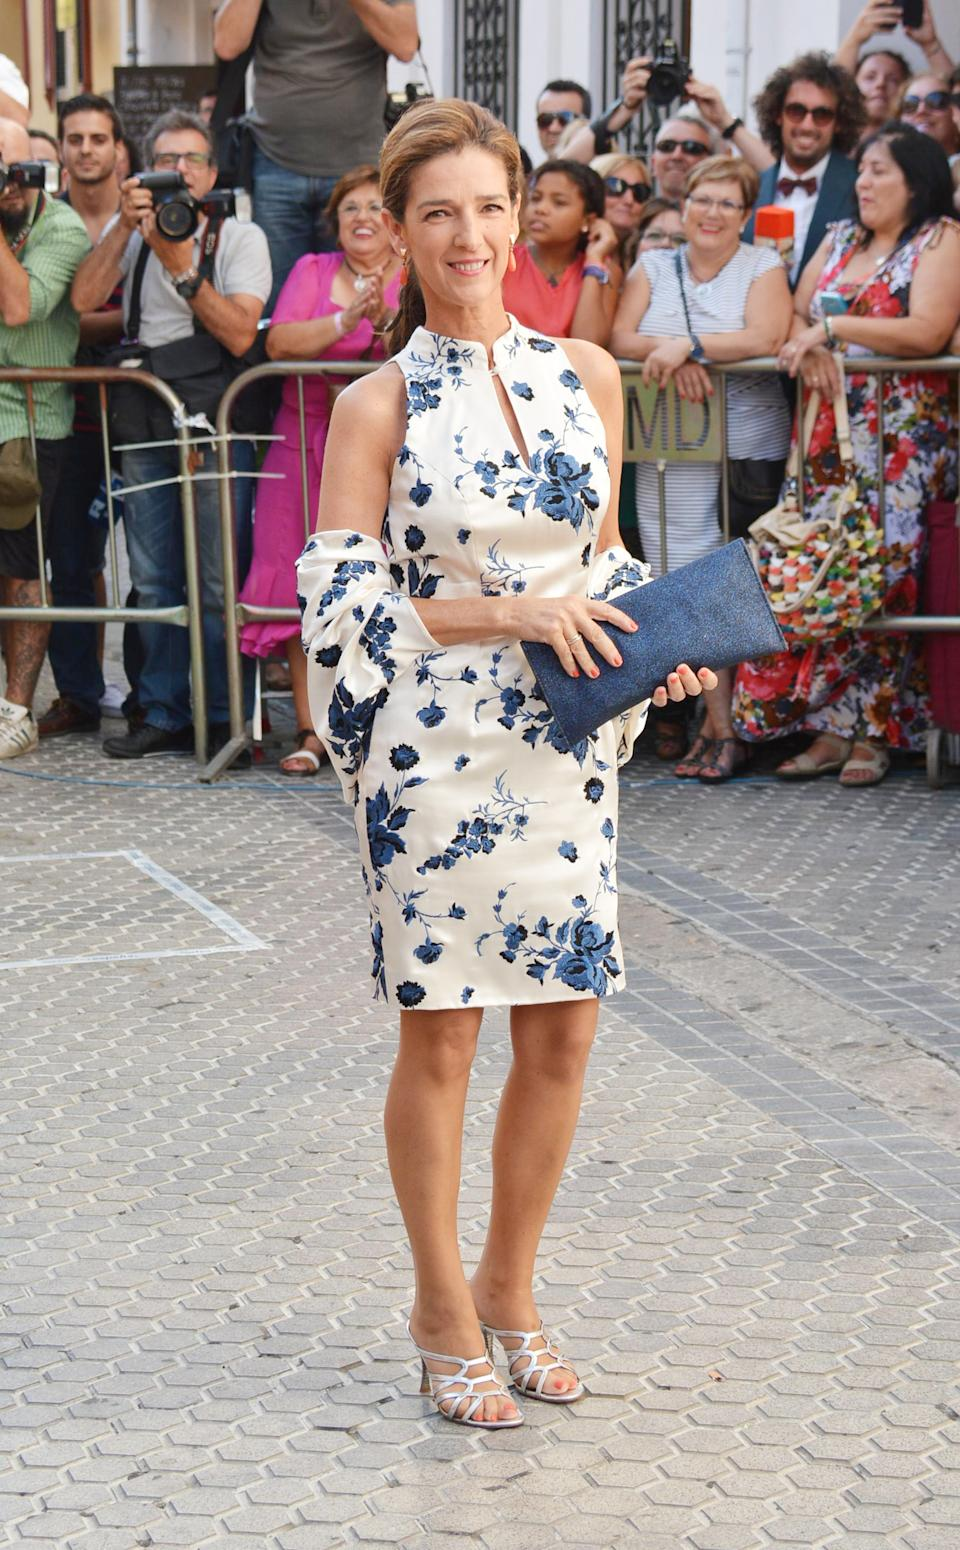 SEVILLE, SPAIN - JULY 12: Paloma Garcia Pelayo attends the wedding of Spanish bullfighter Francisco Rivera and Lourdes Montes on July 12, 2014 in Seville, Spain.  (Photo by Europa Press/Europa Press via Getty Images)